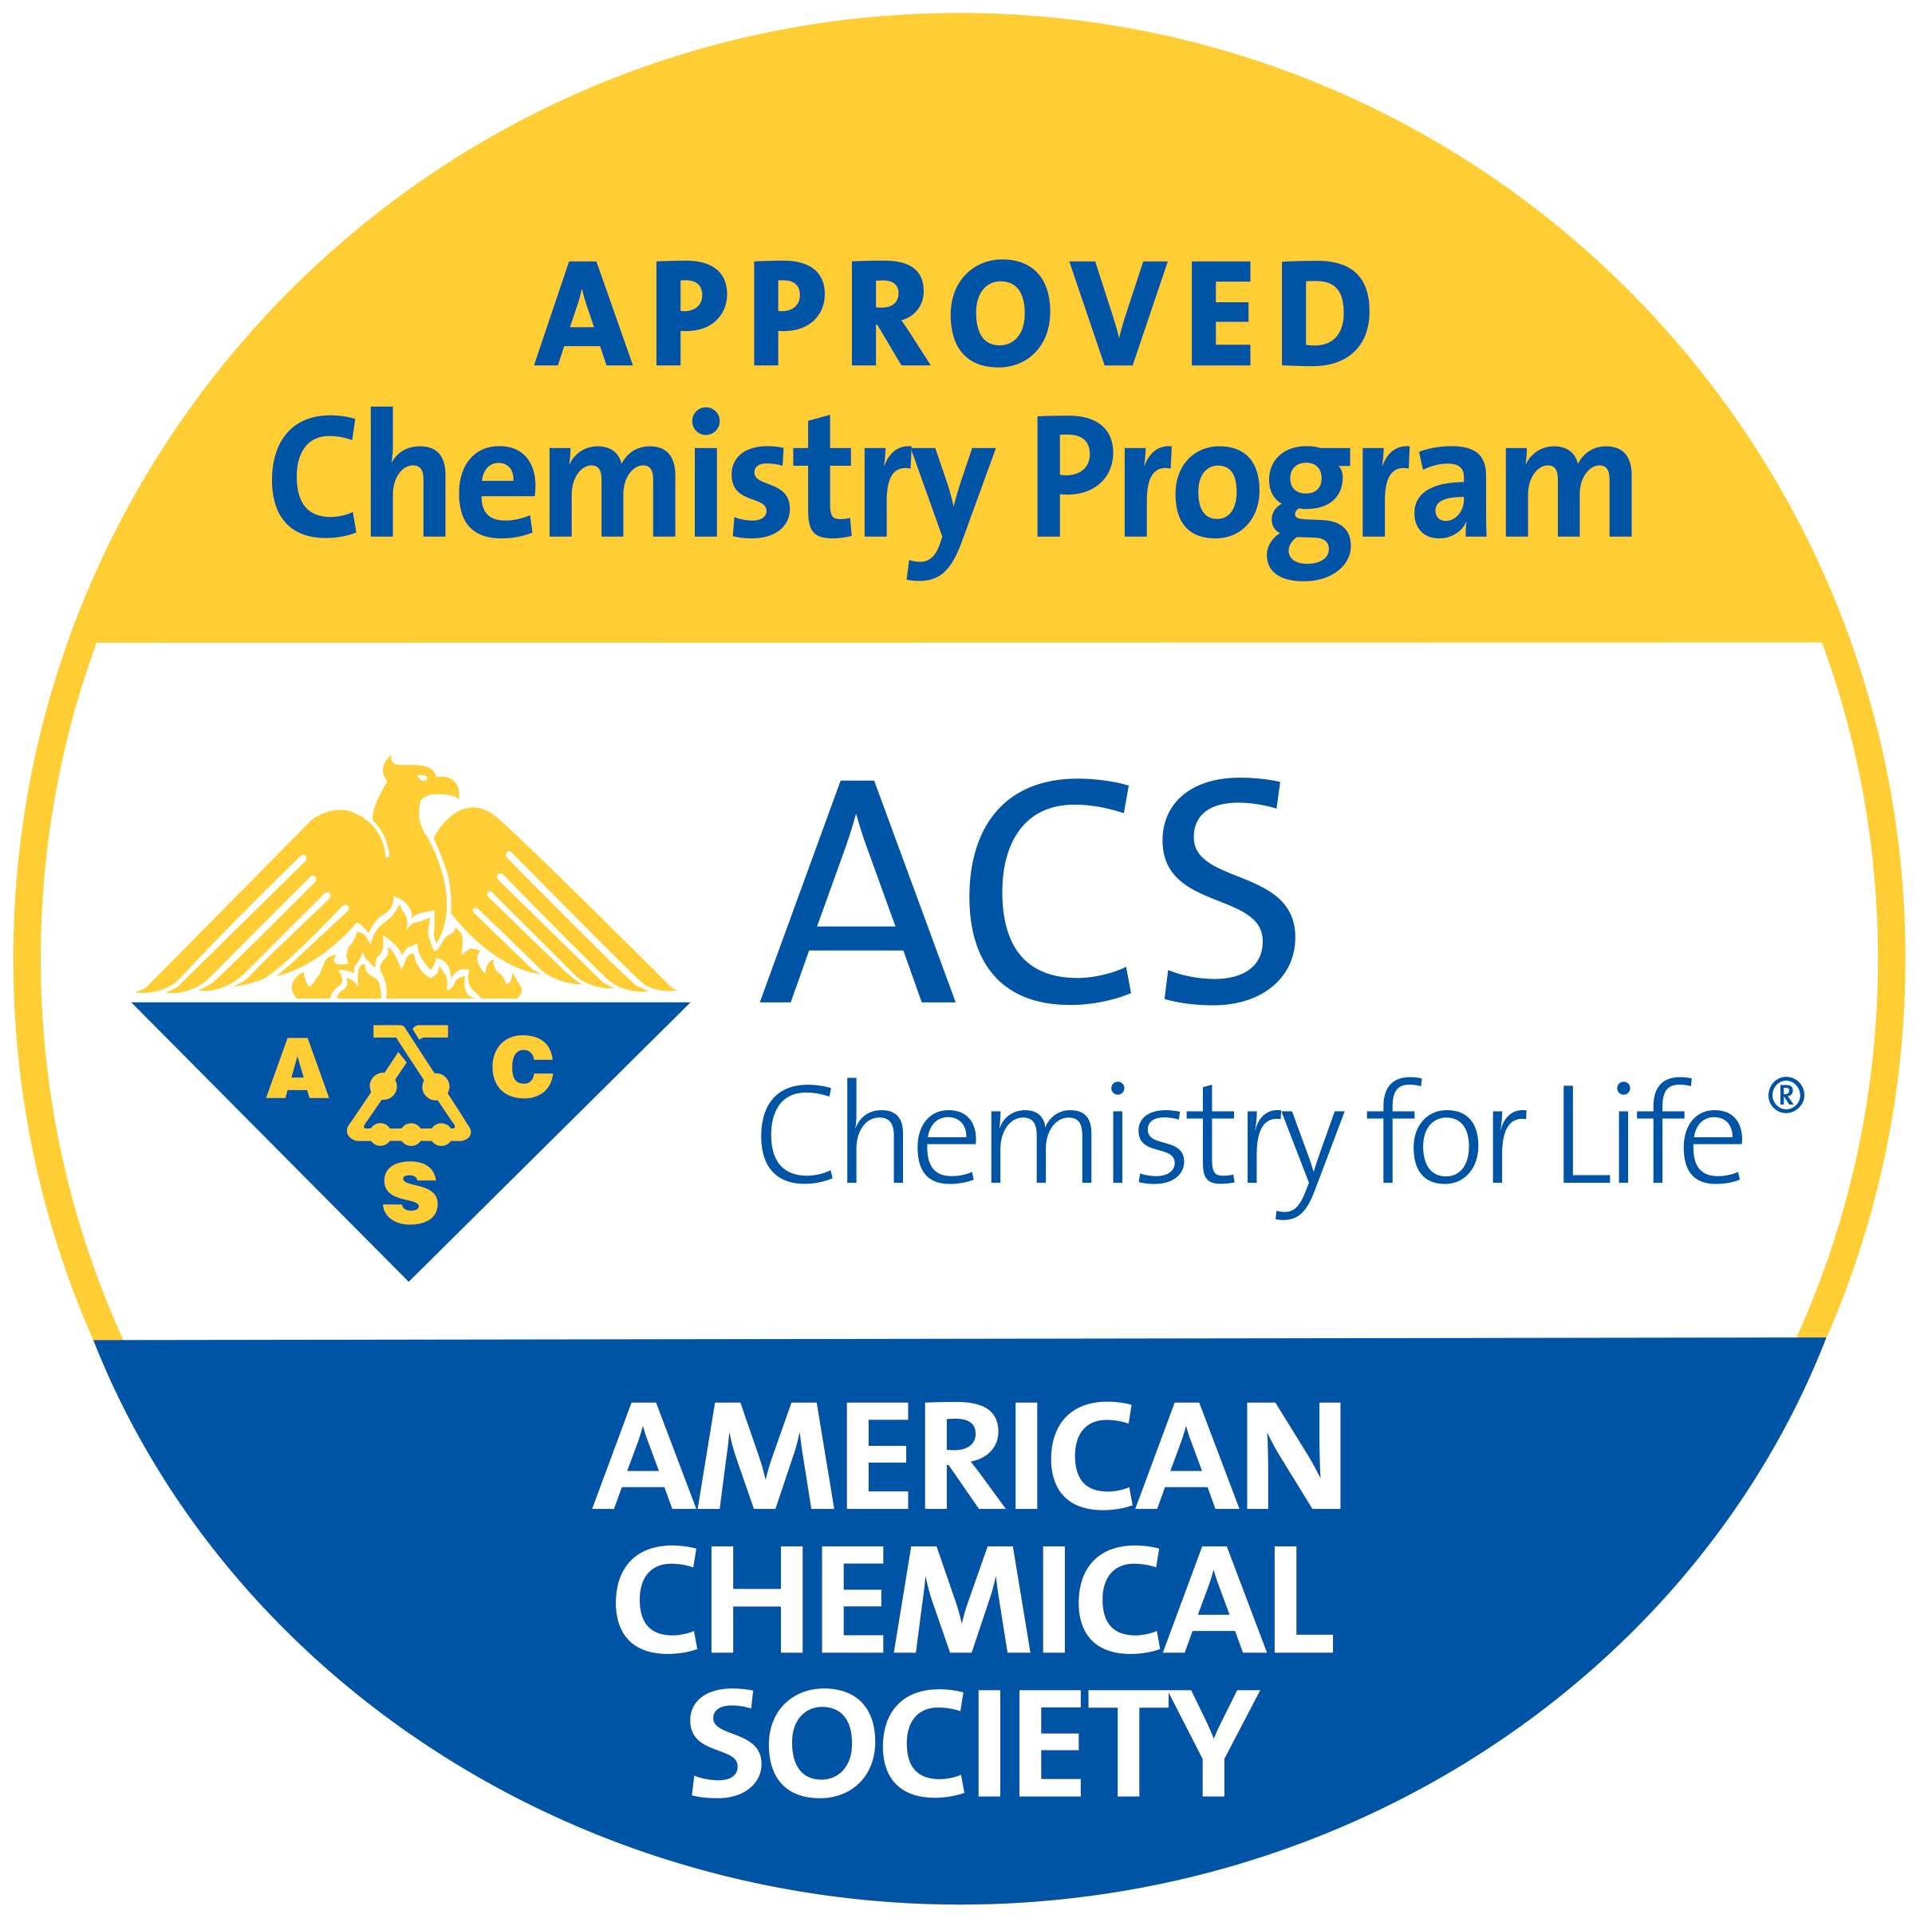 Approved Chemistry Program. ACS, Chemistry for Life. American Chemical Society.